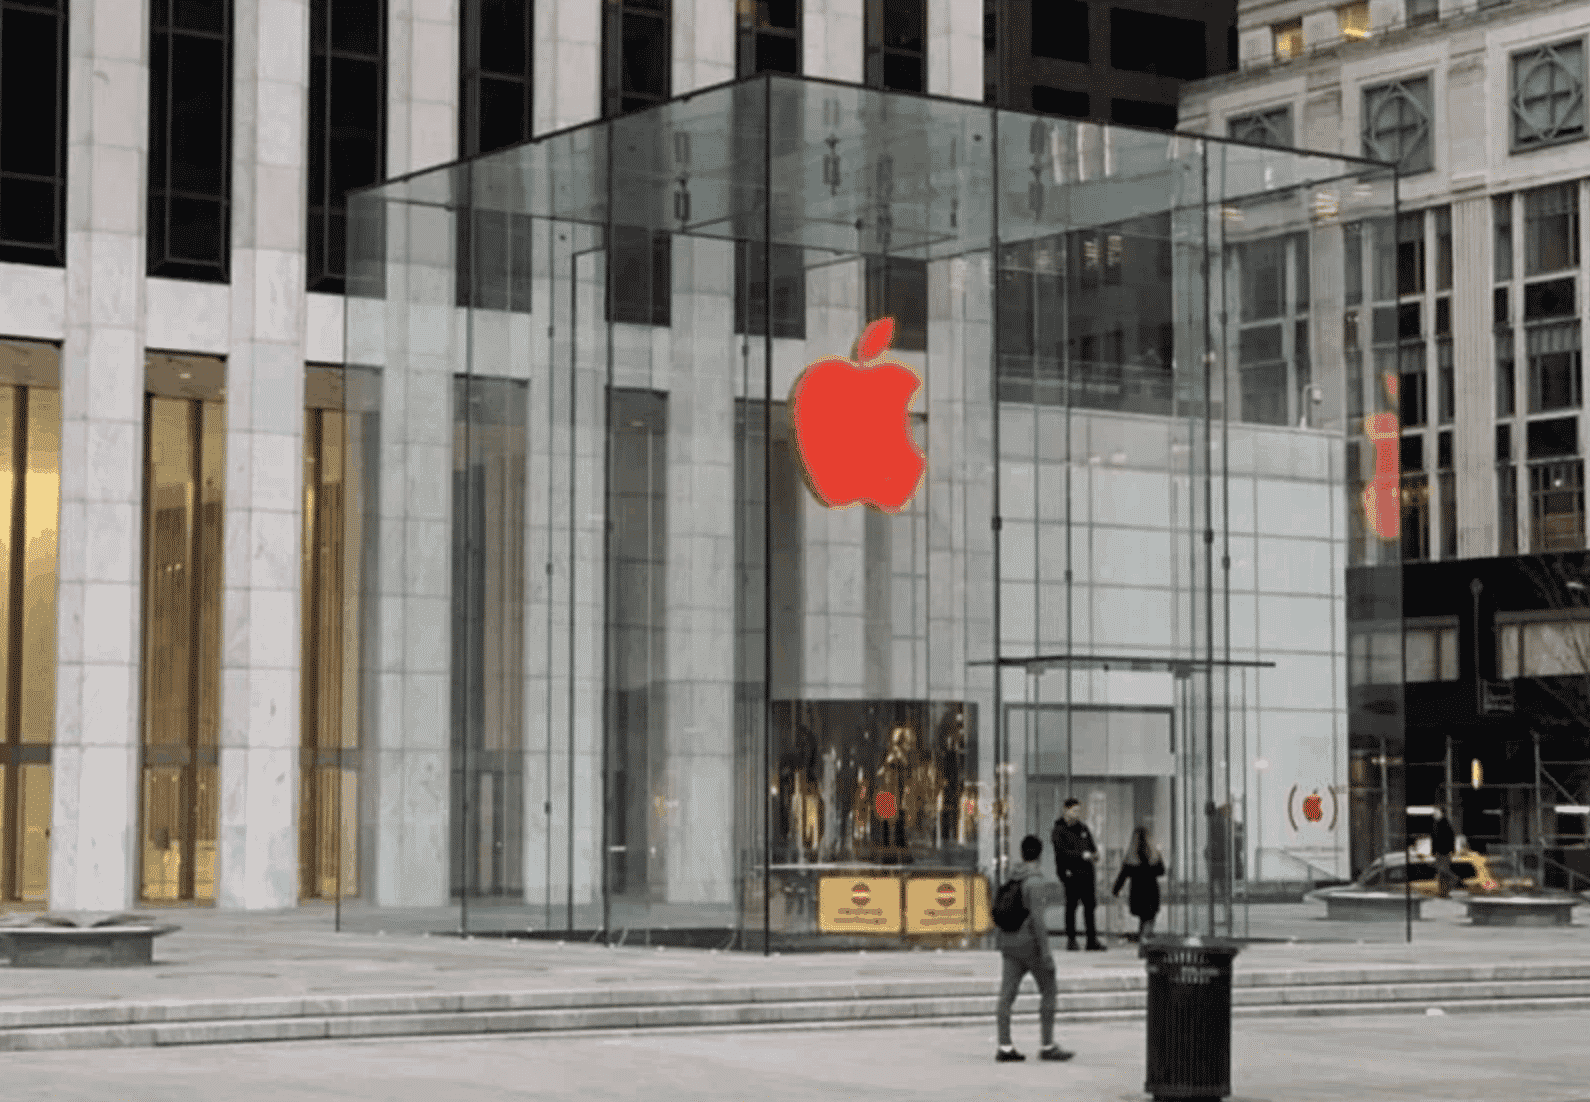 This is the Apple Store logo in Red color for AIDS day.